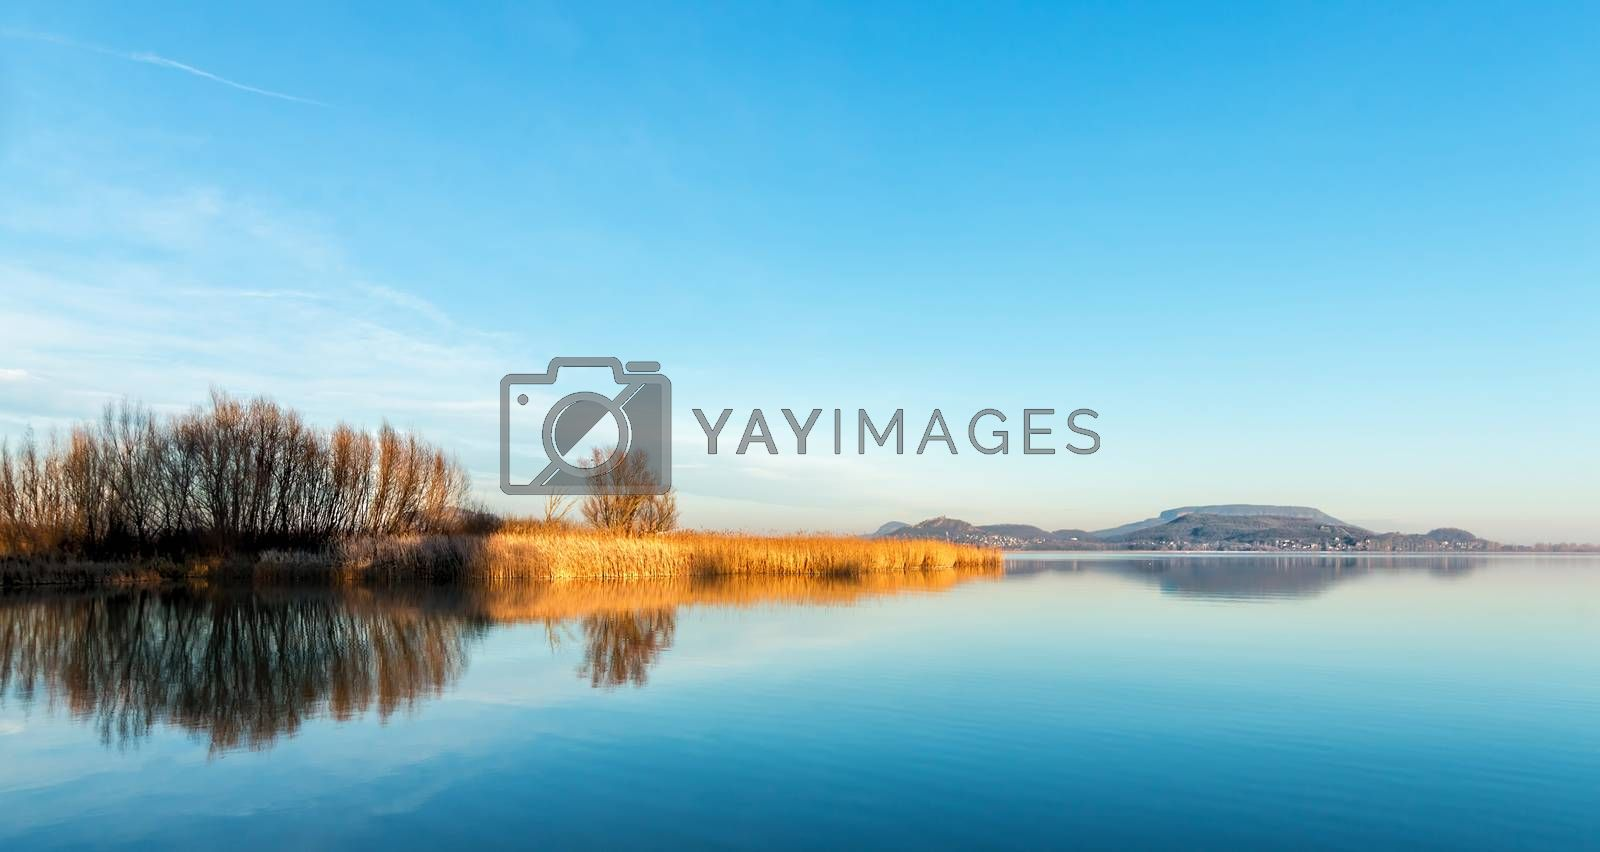 Landscape from Hungary from the lake Balaton